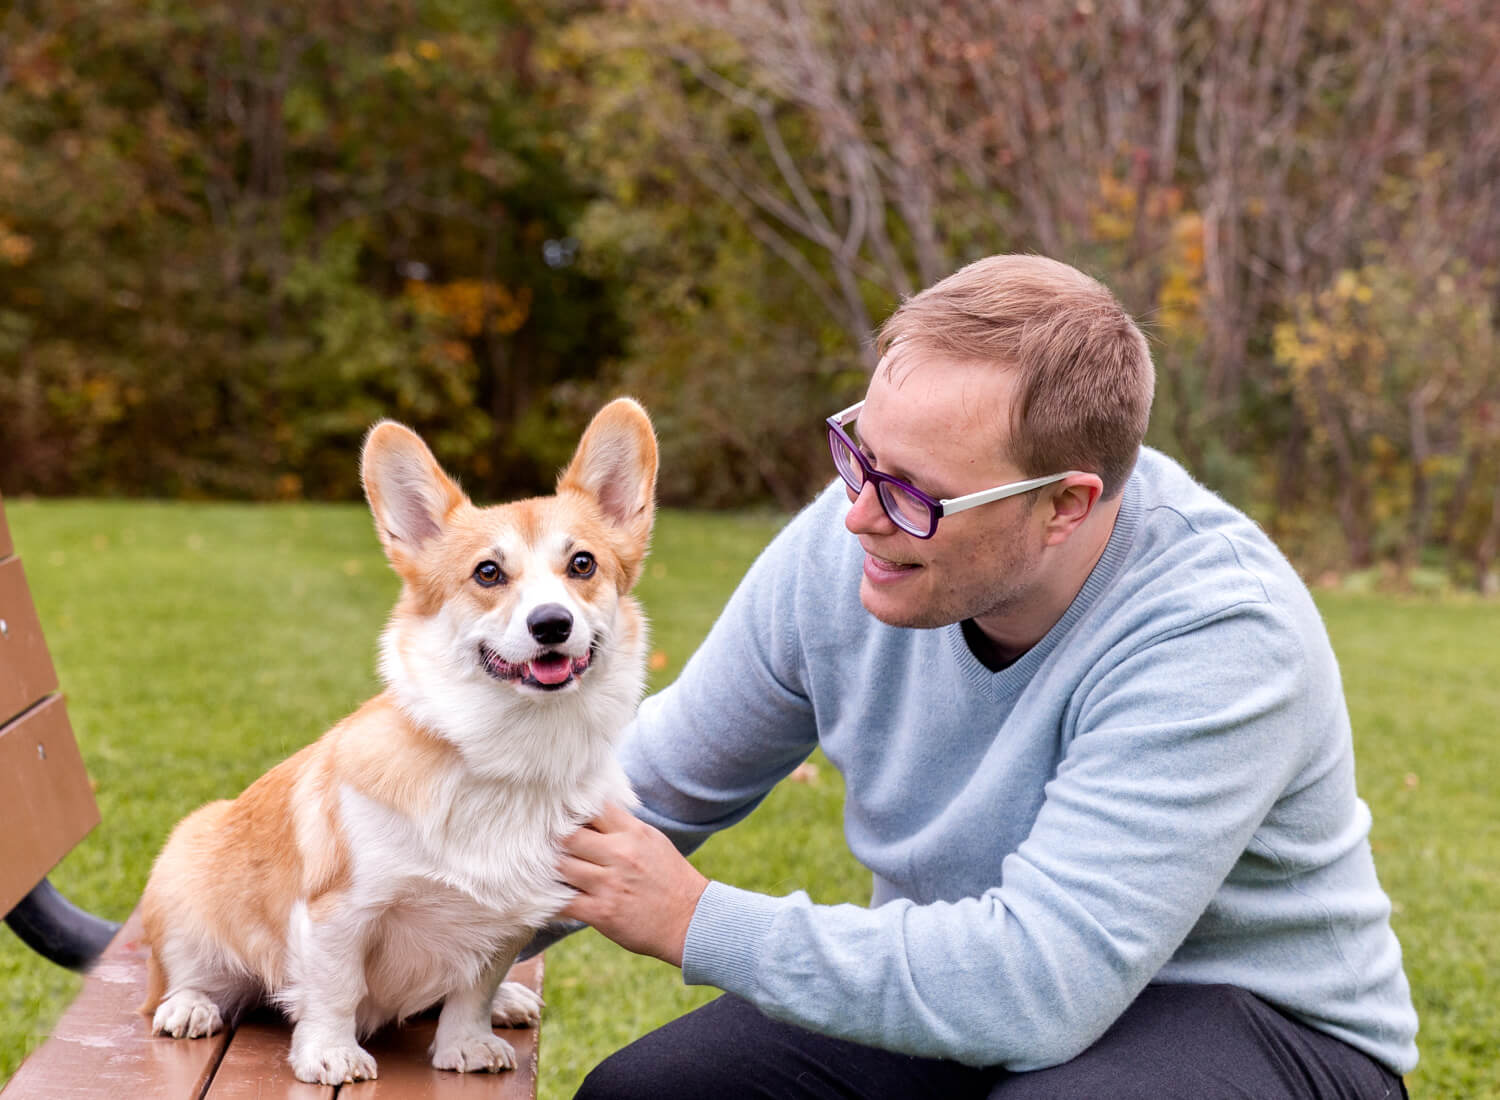 Corgi-dog-and-owner-Earl-bales-park-Photography.jpg